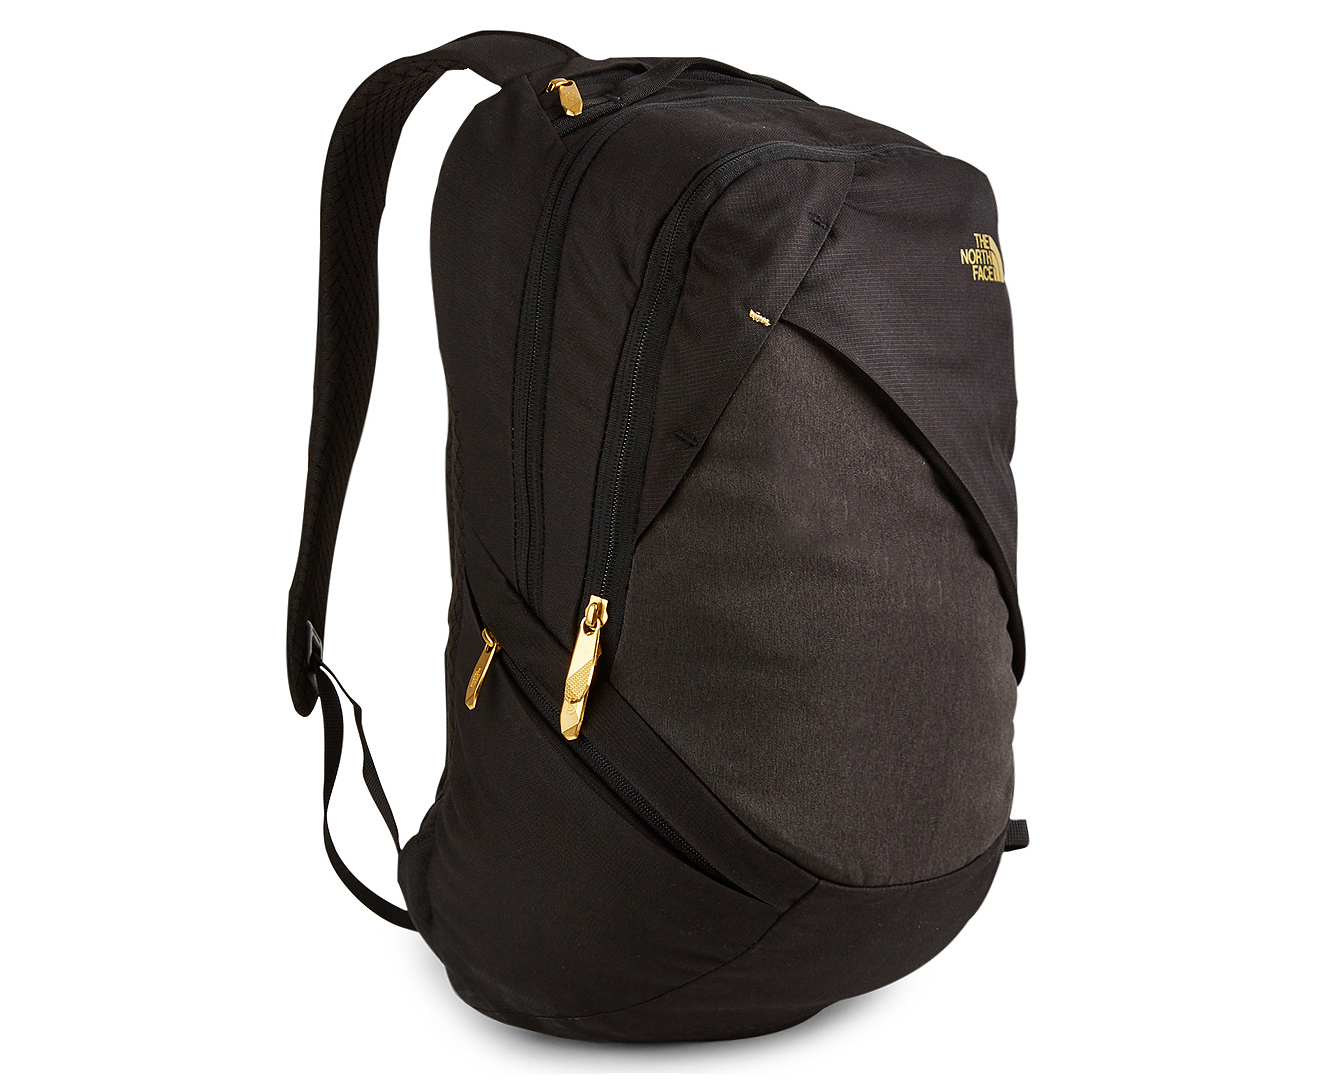 63976f4c9 The North Face Women's Isabella 21L Backpack - Black Heather/Gold